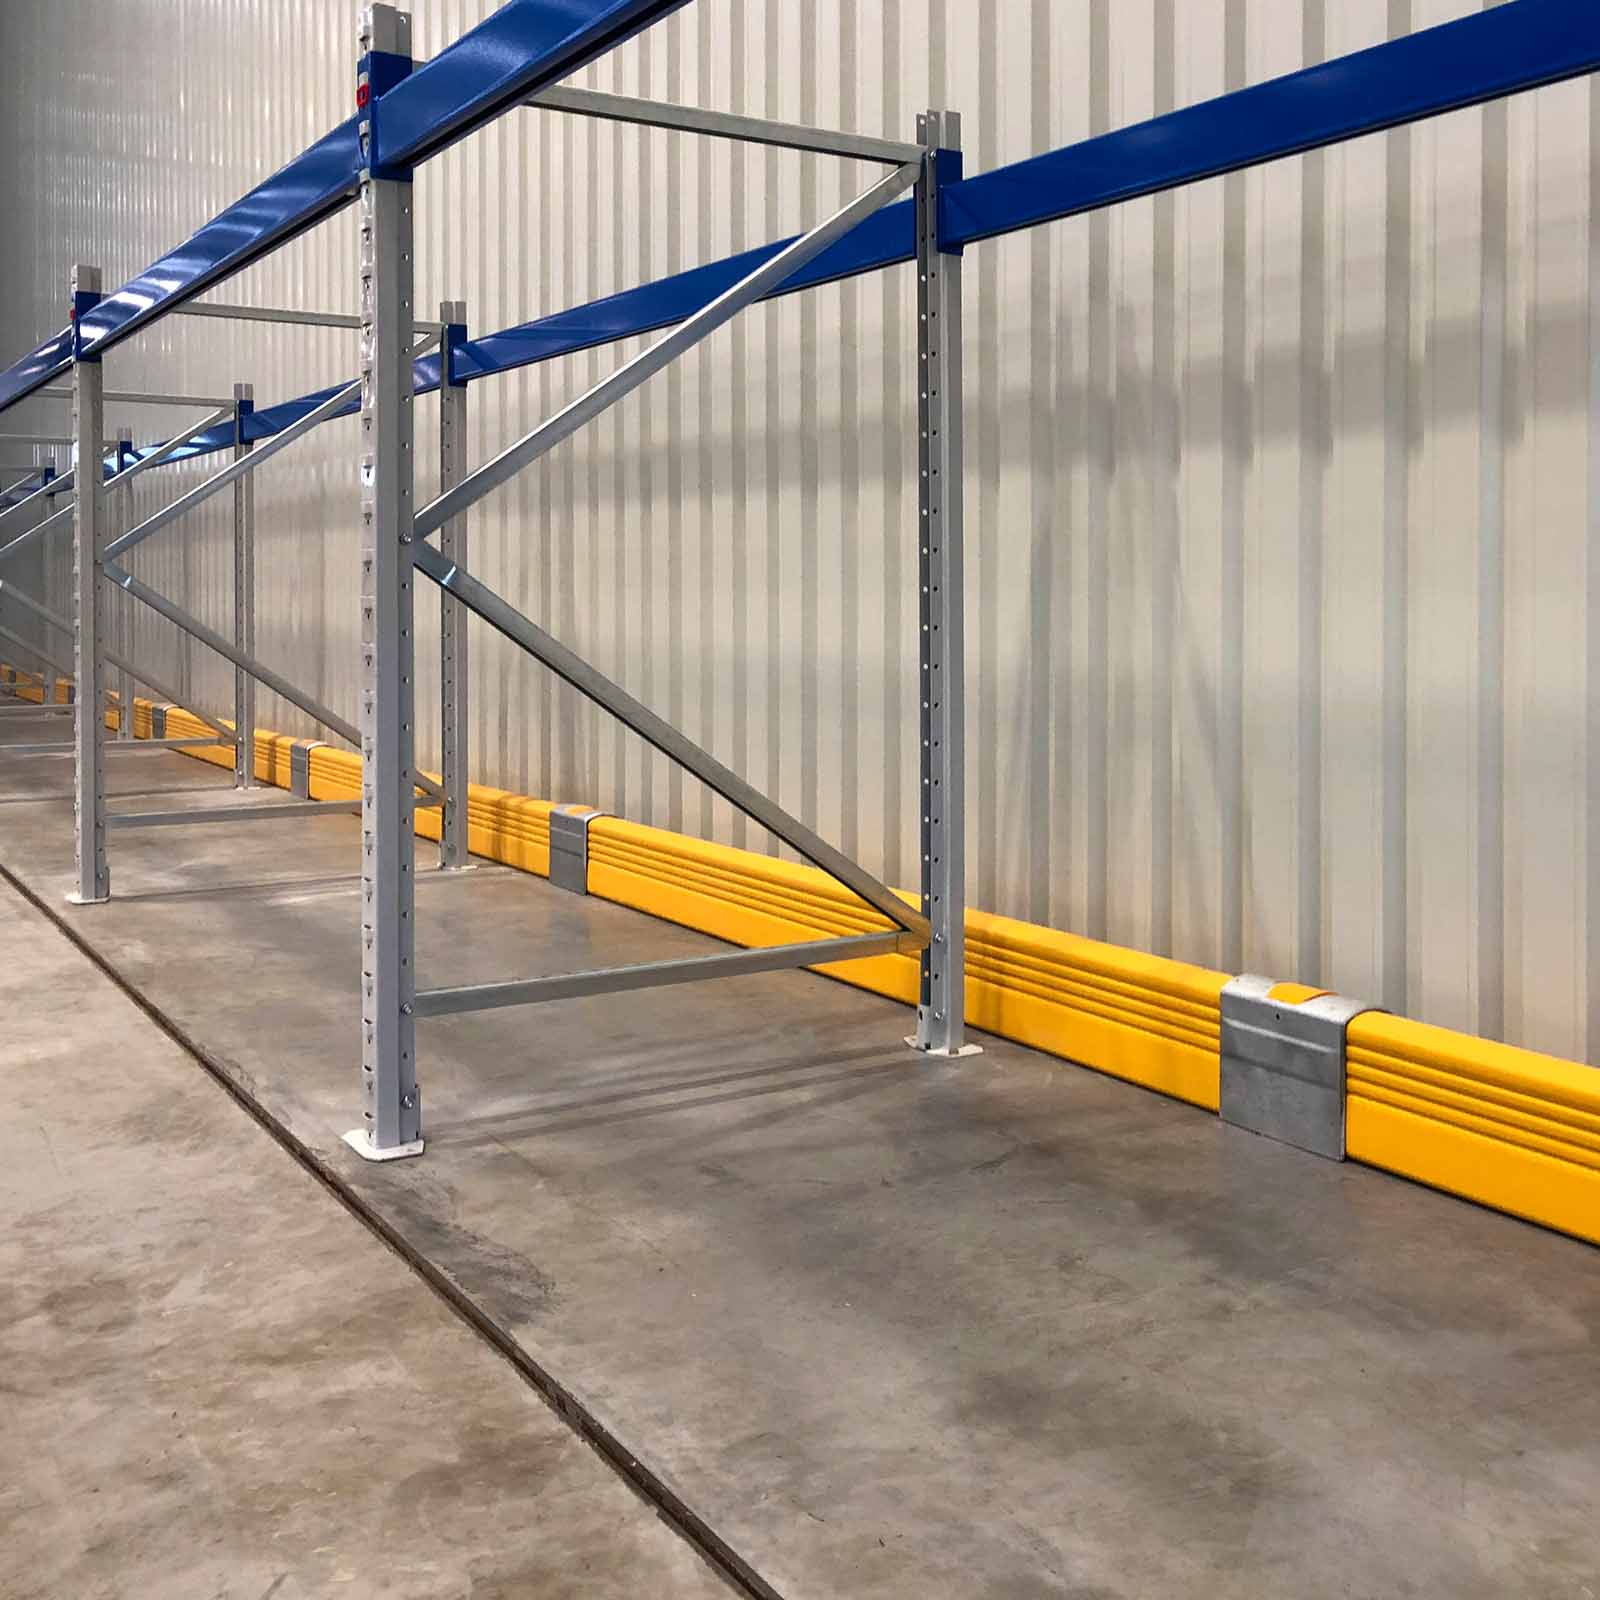 McCue Crash Barrier Safety Protection in warehouse